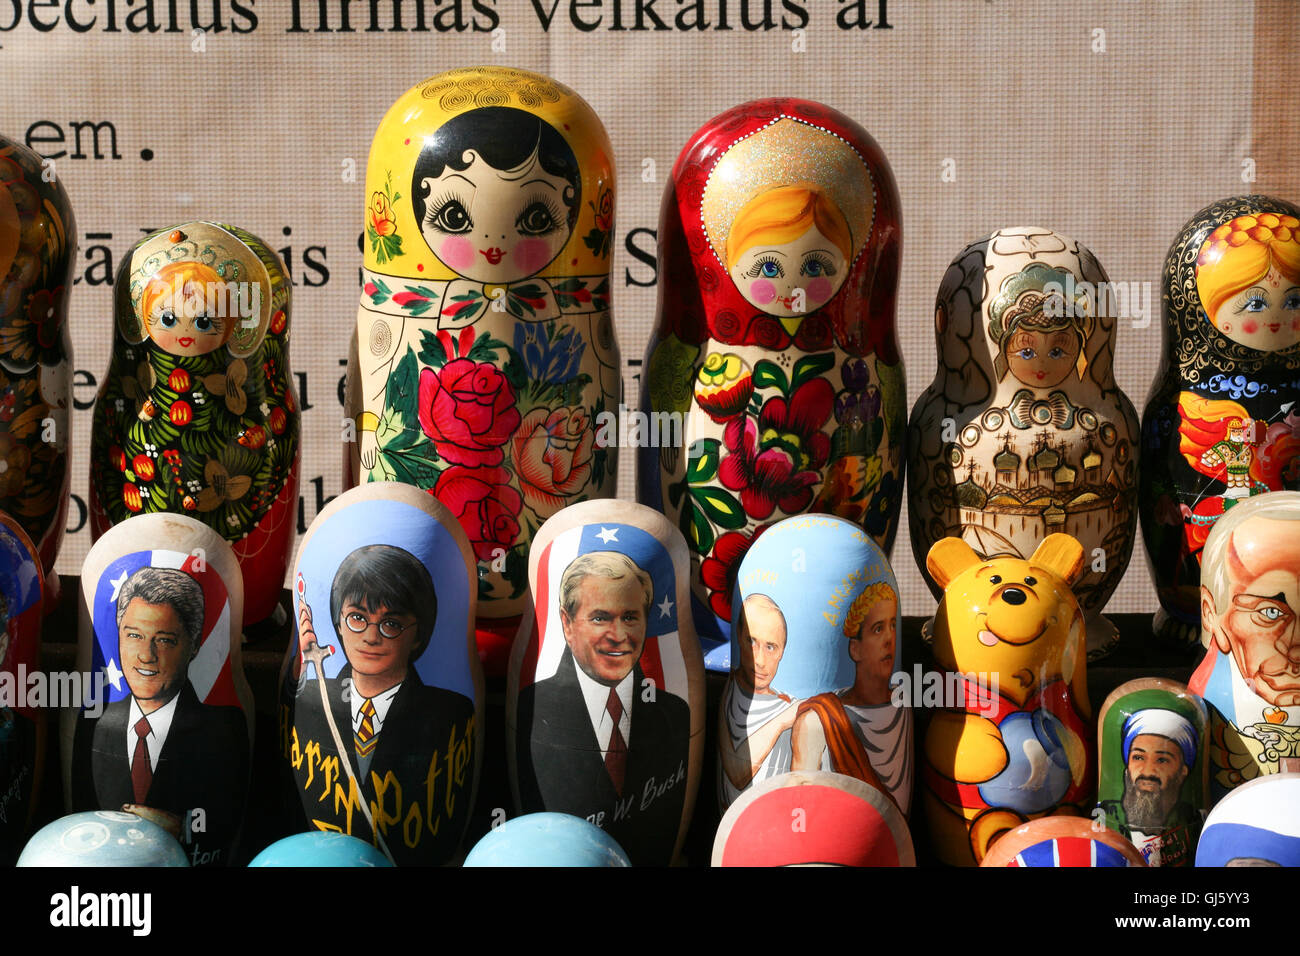 Matryoshka doll /Russian Dolls,with typical motherly images along with dolls of Clinton, Bush, Harry Potter and - Stock Image